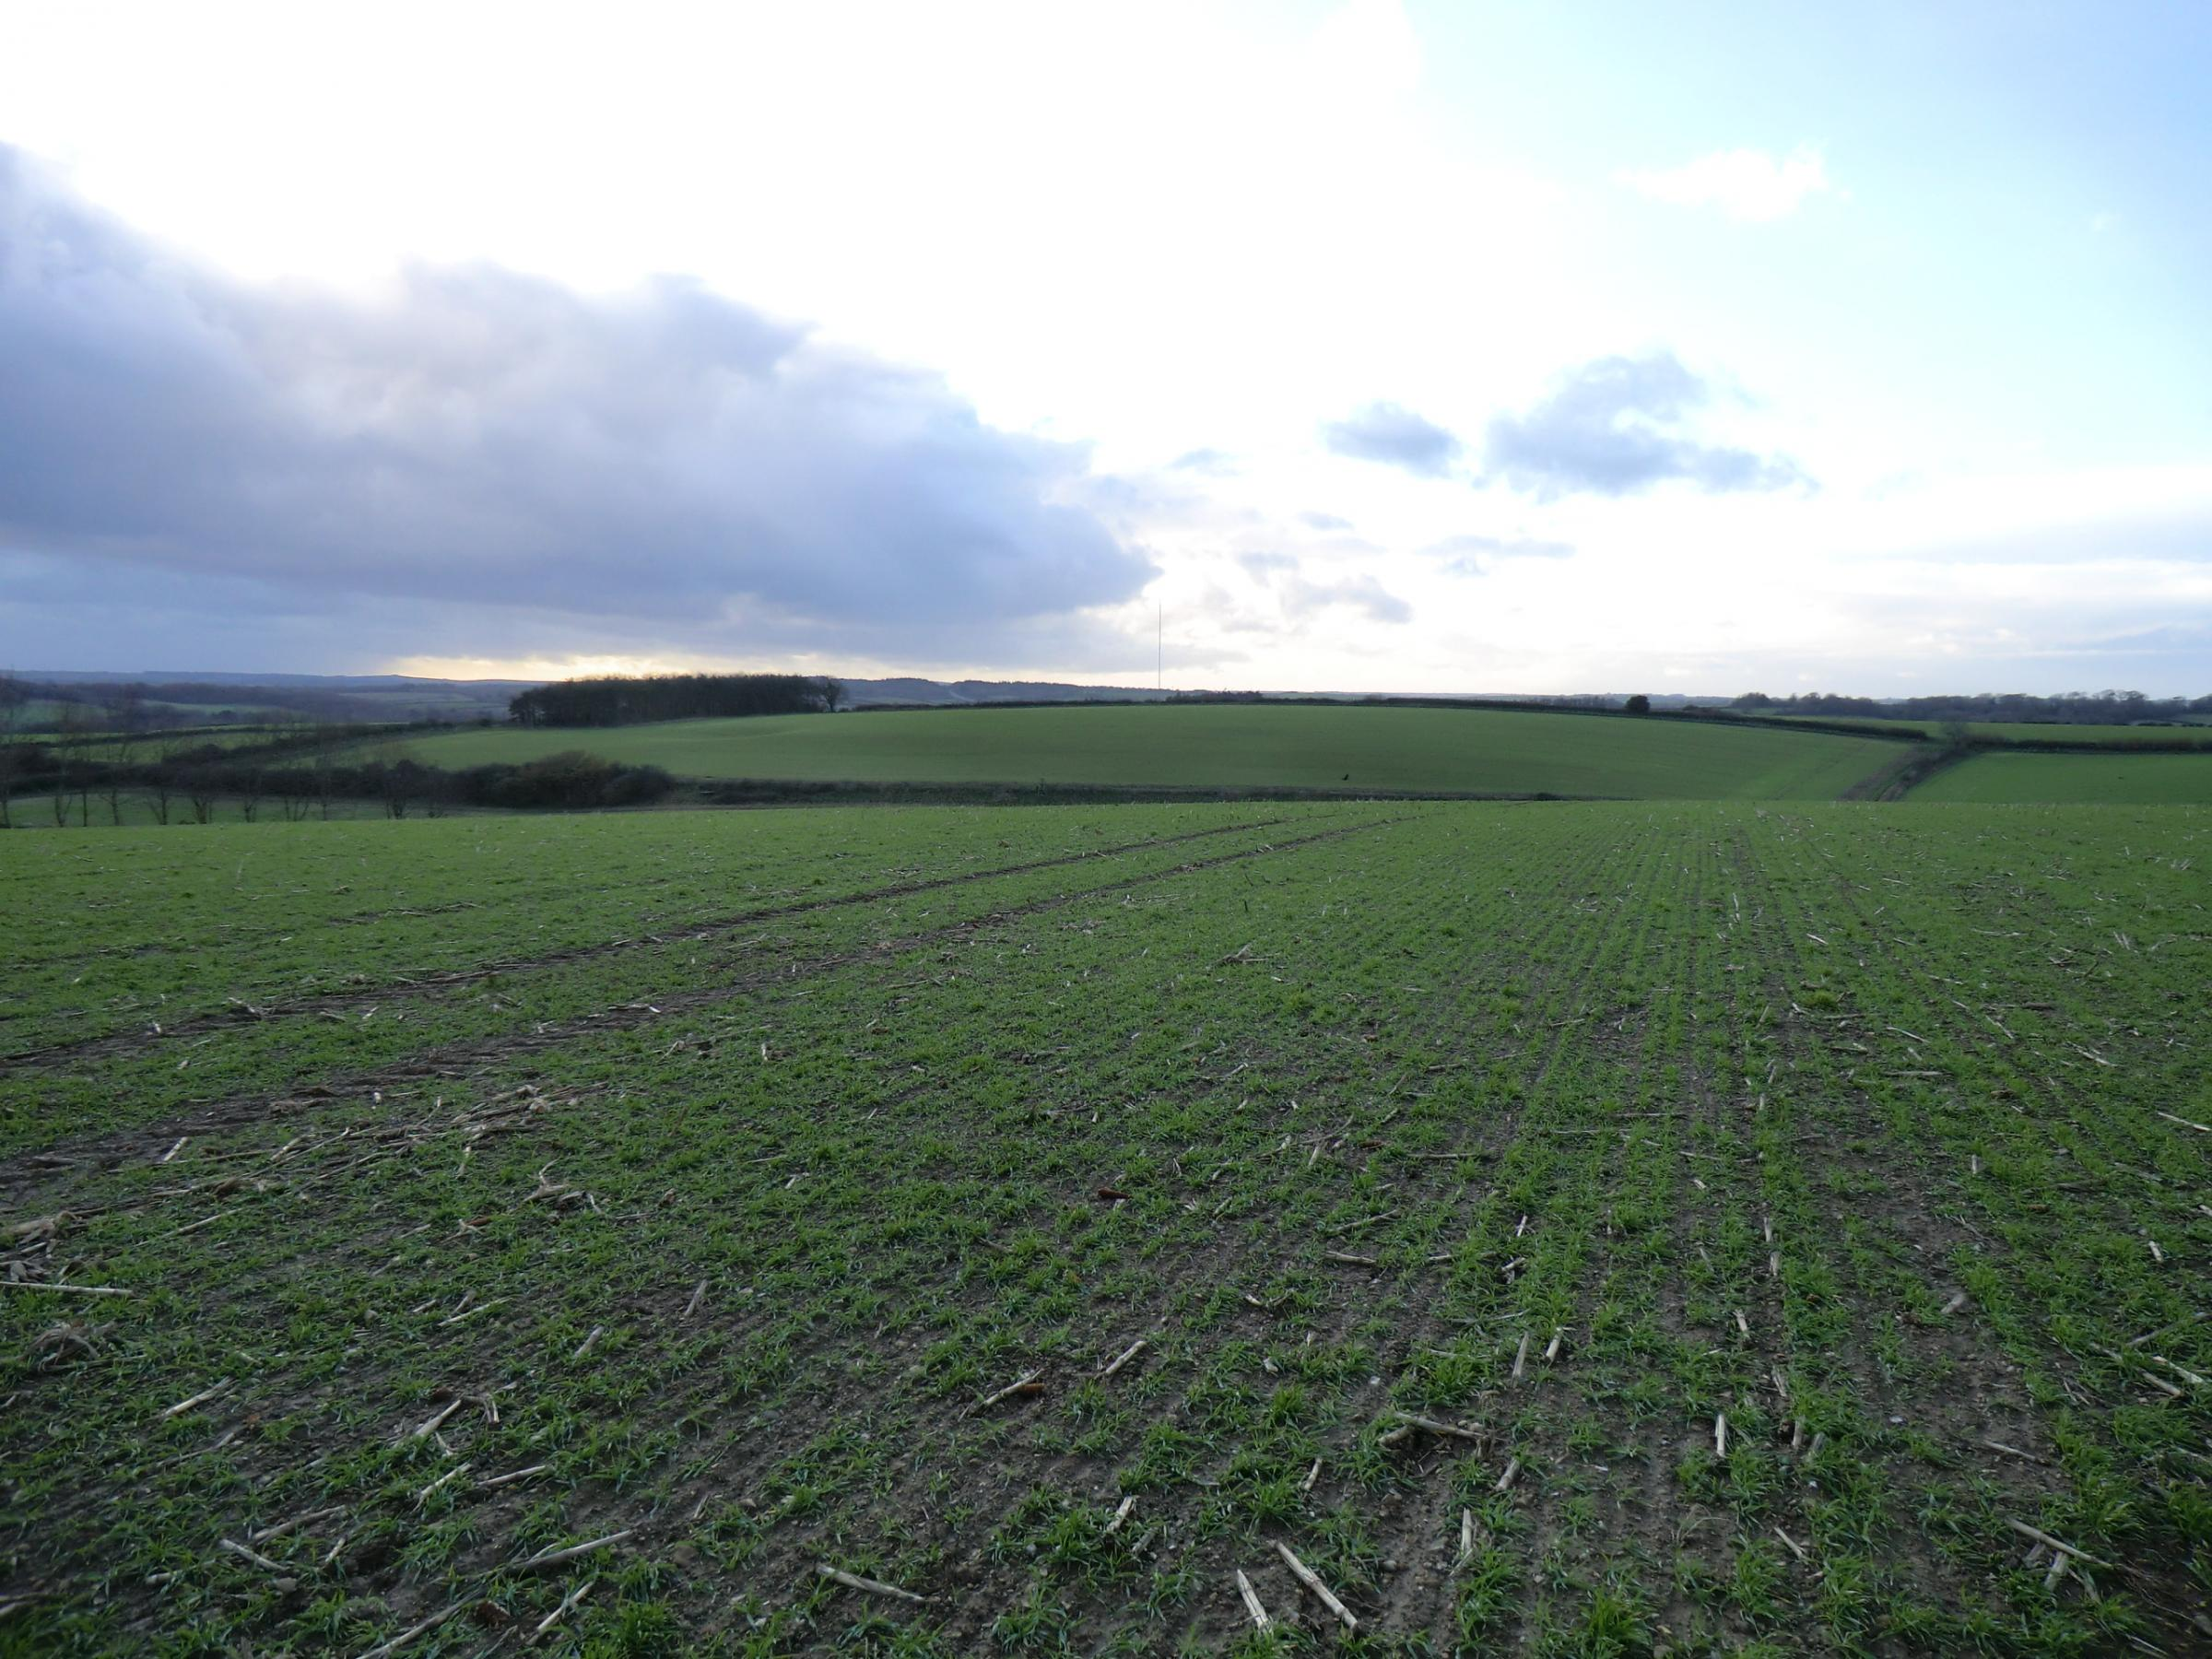 The proposed site for the wind farm near Tolpuddle